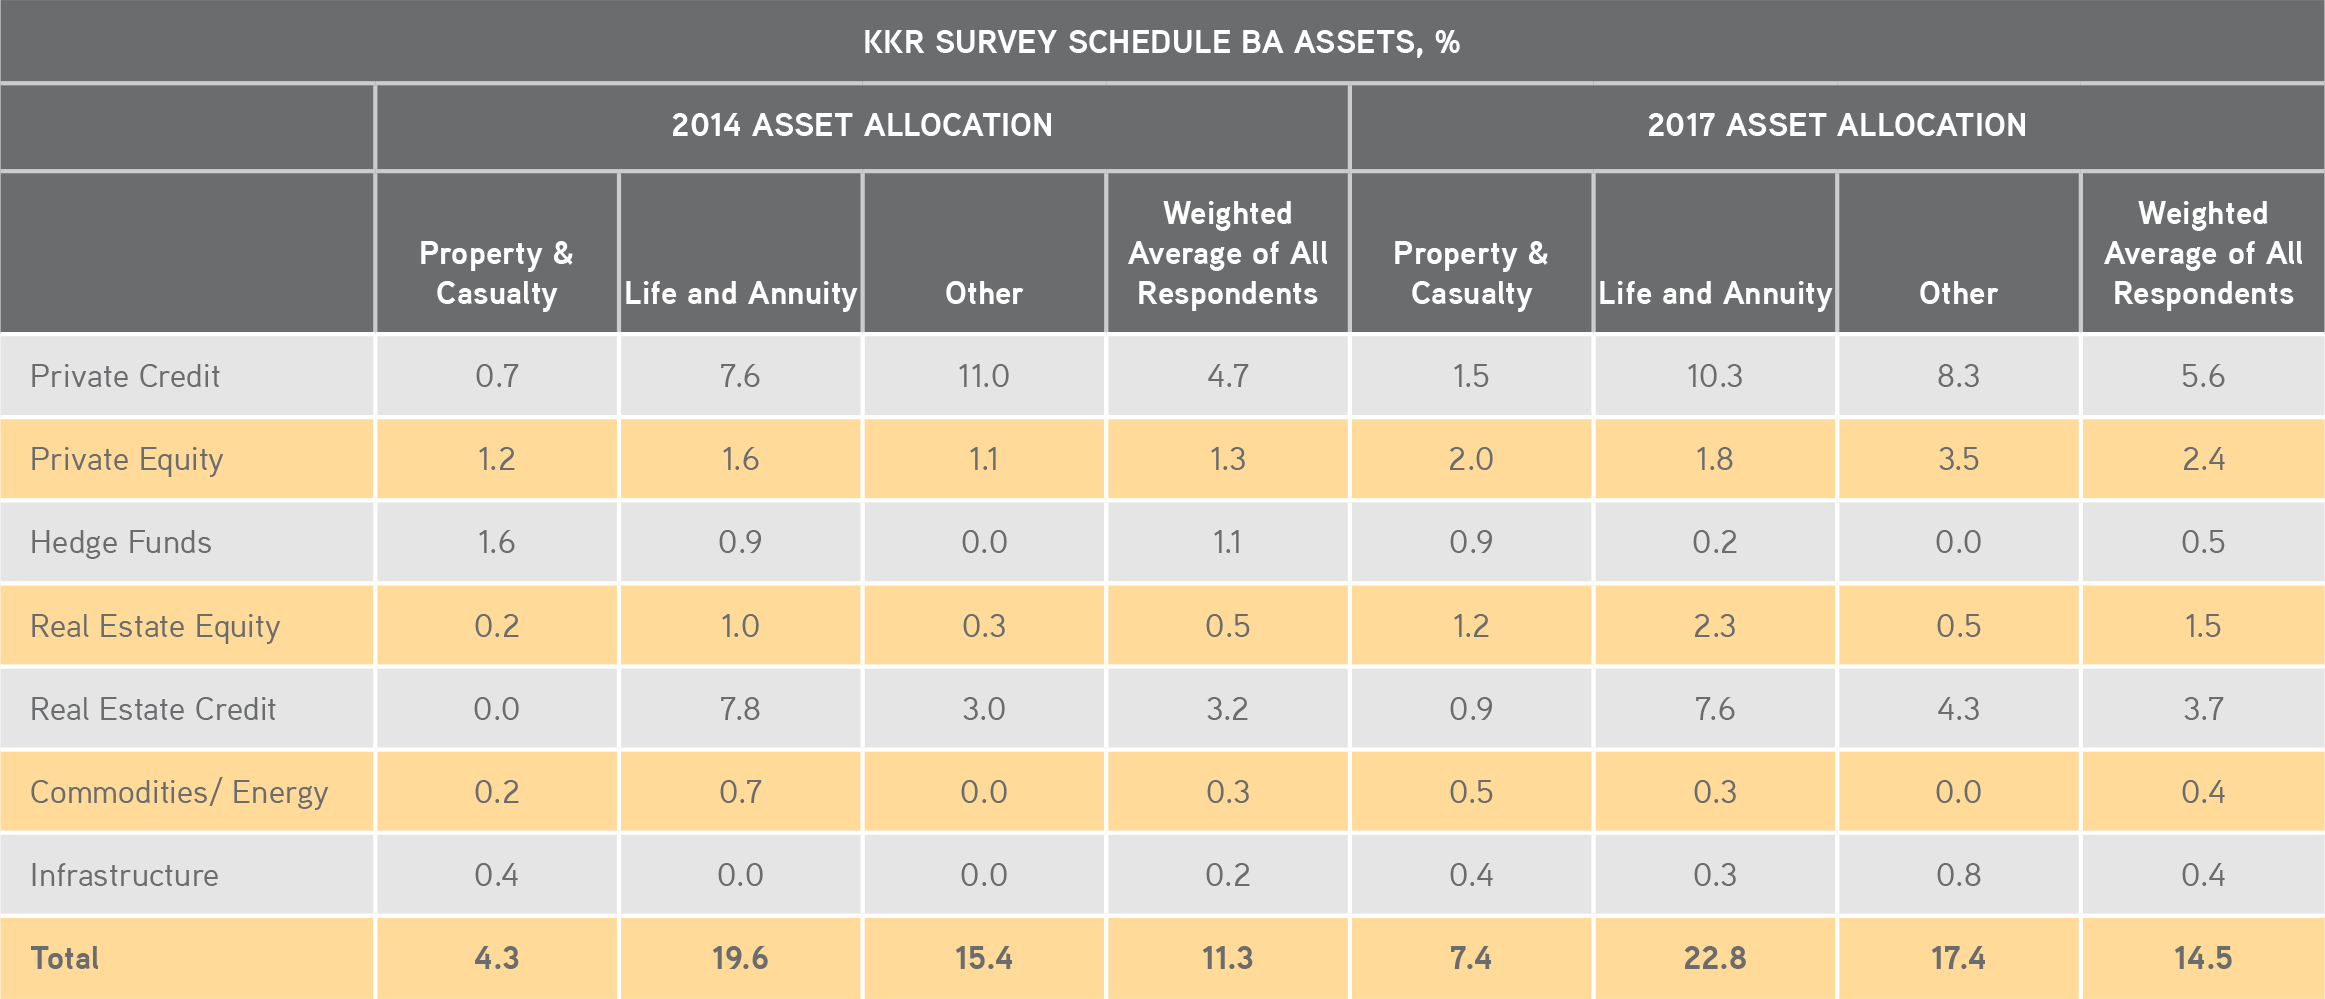 KKR | Henry McVey | New World Order | KKR SURVEY SCHEDULE BA ASSETS, %